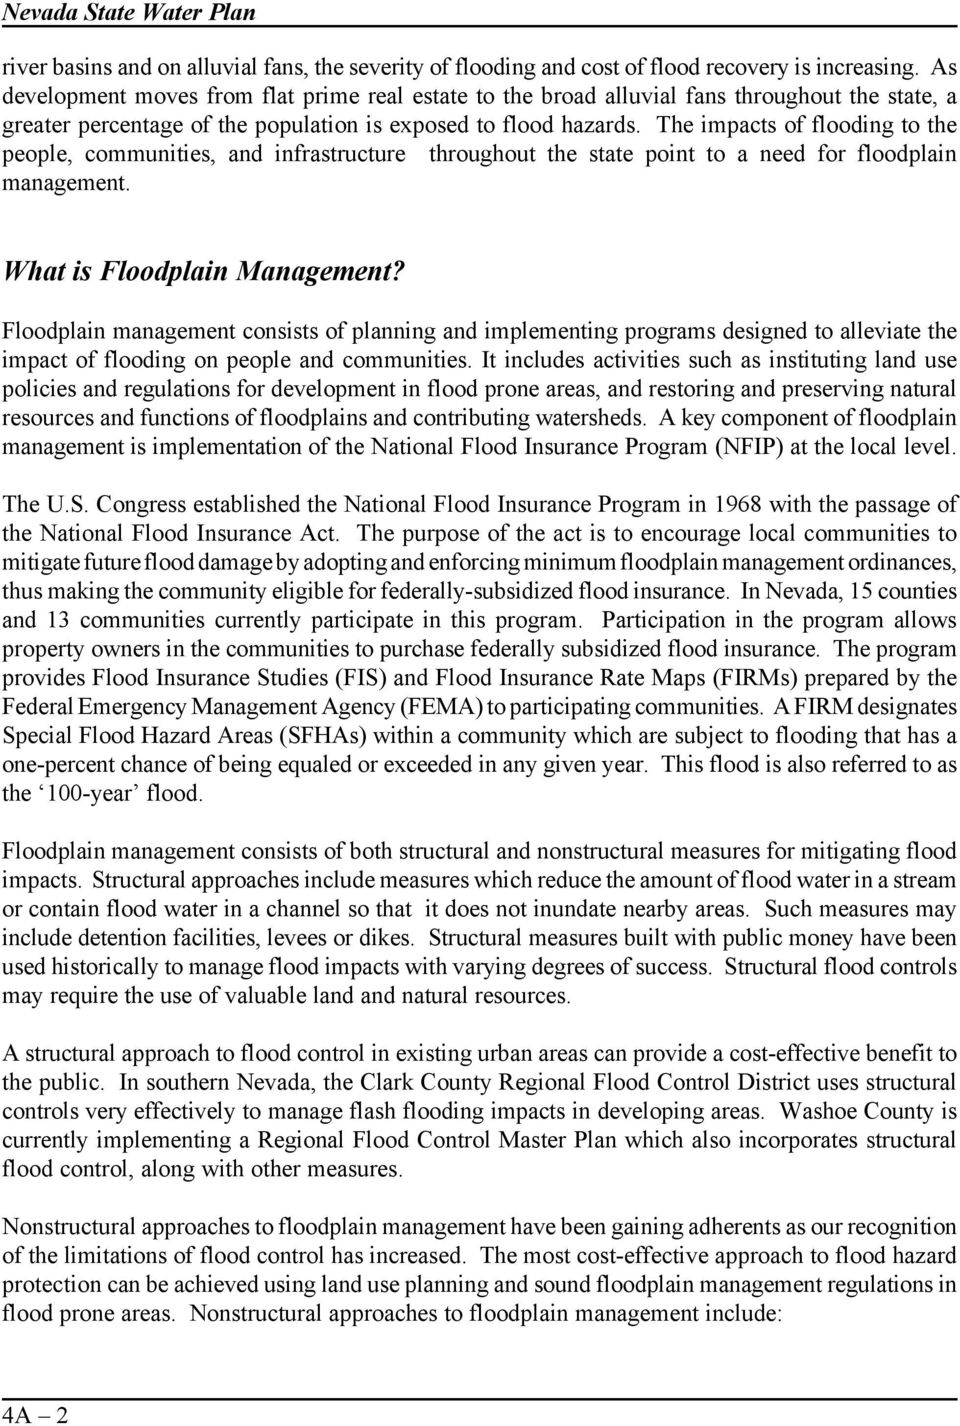 The impacts of flooding to the people, communities, and infrastructure throughout the state point to a need for floodplain management. What is Floodplain Management?